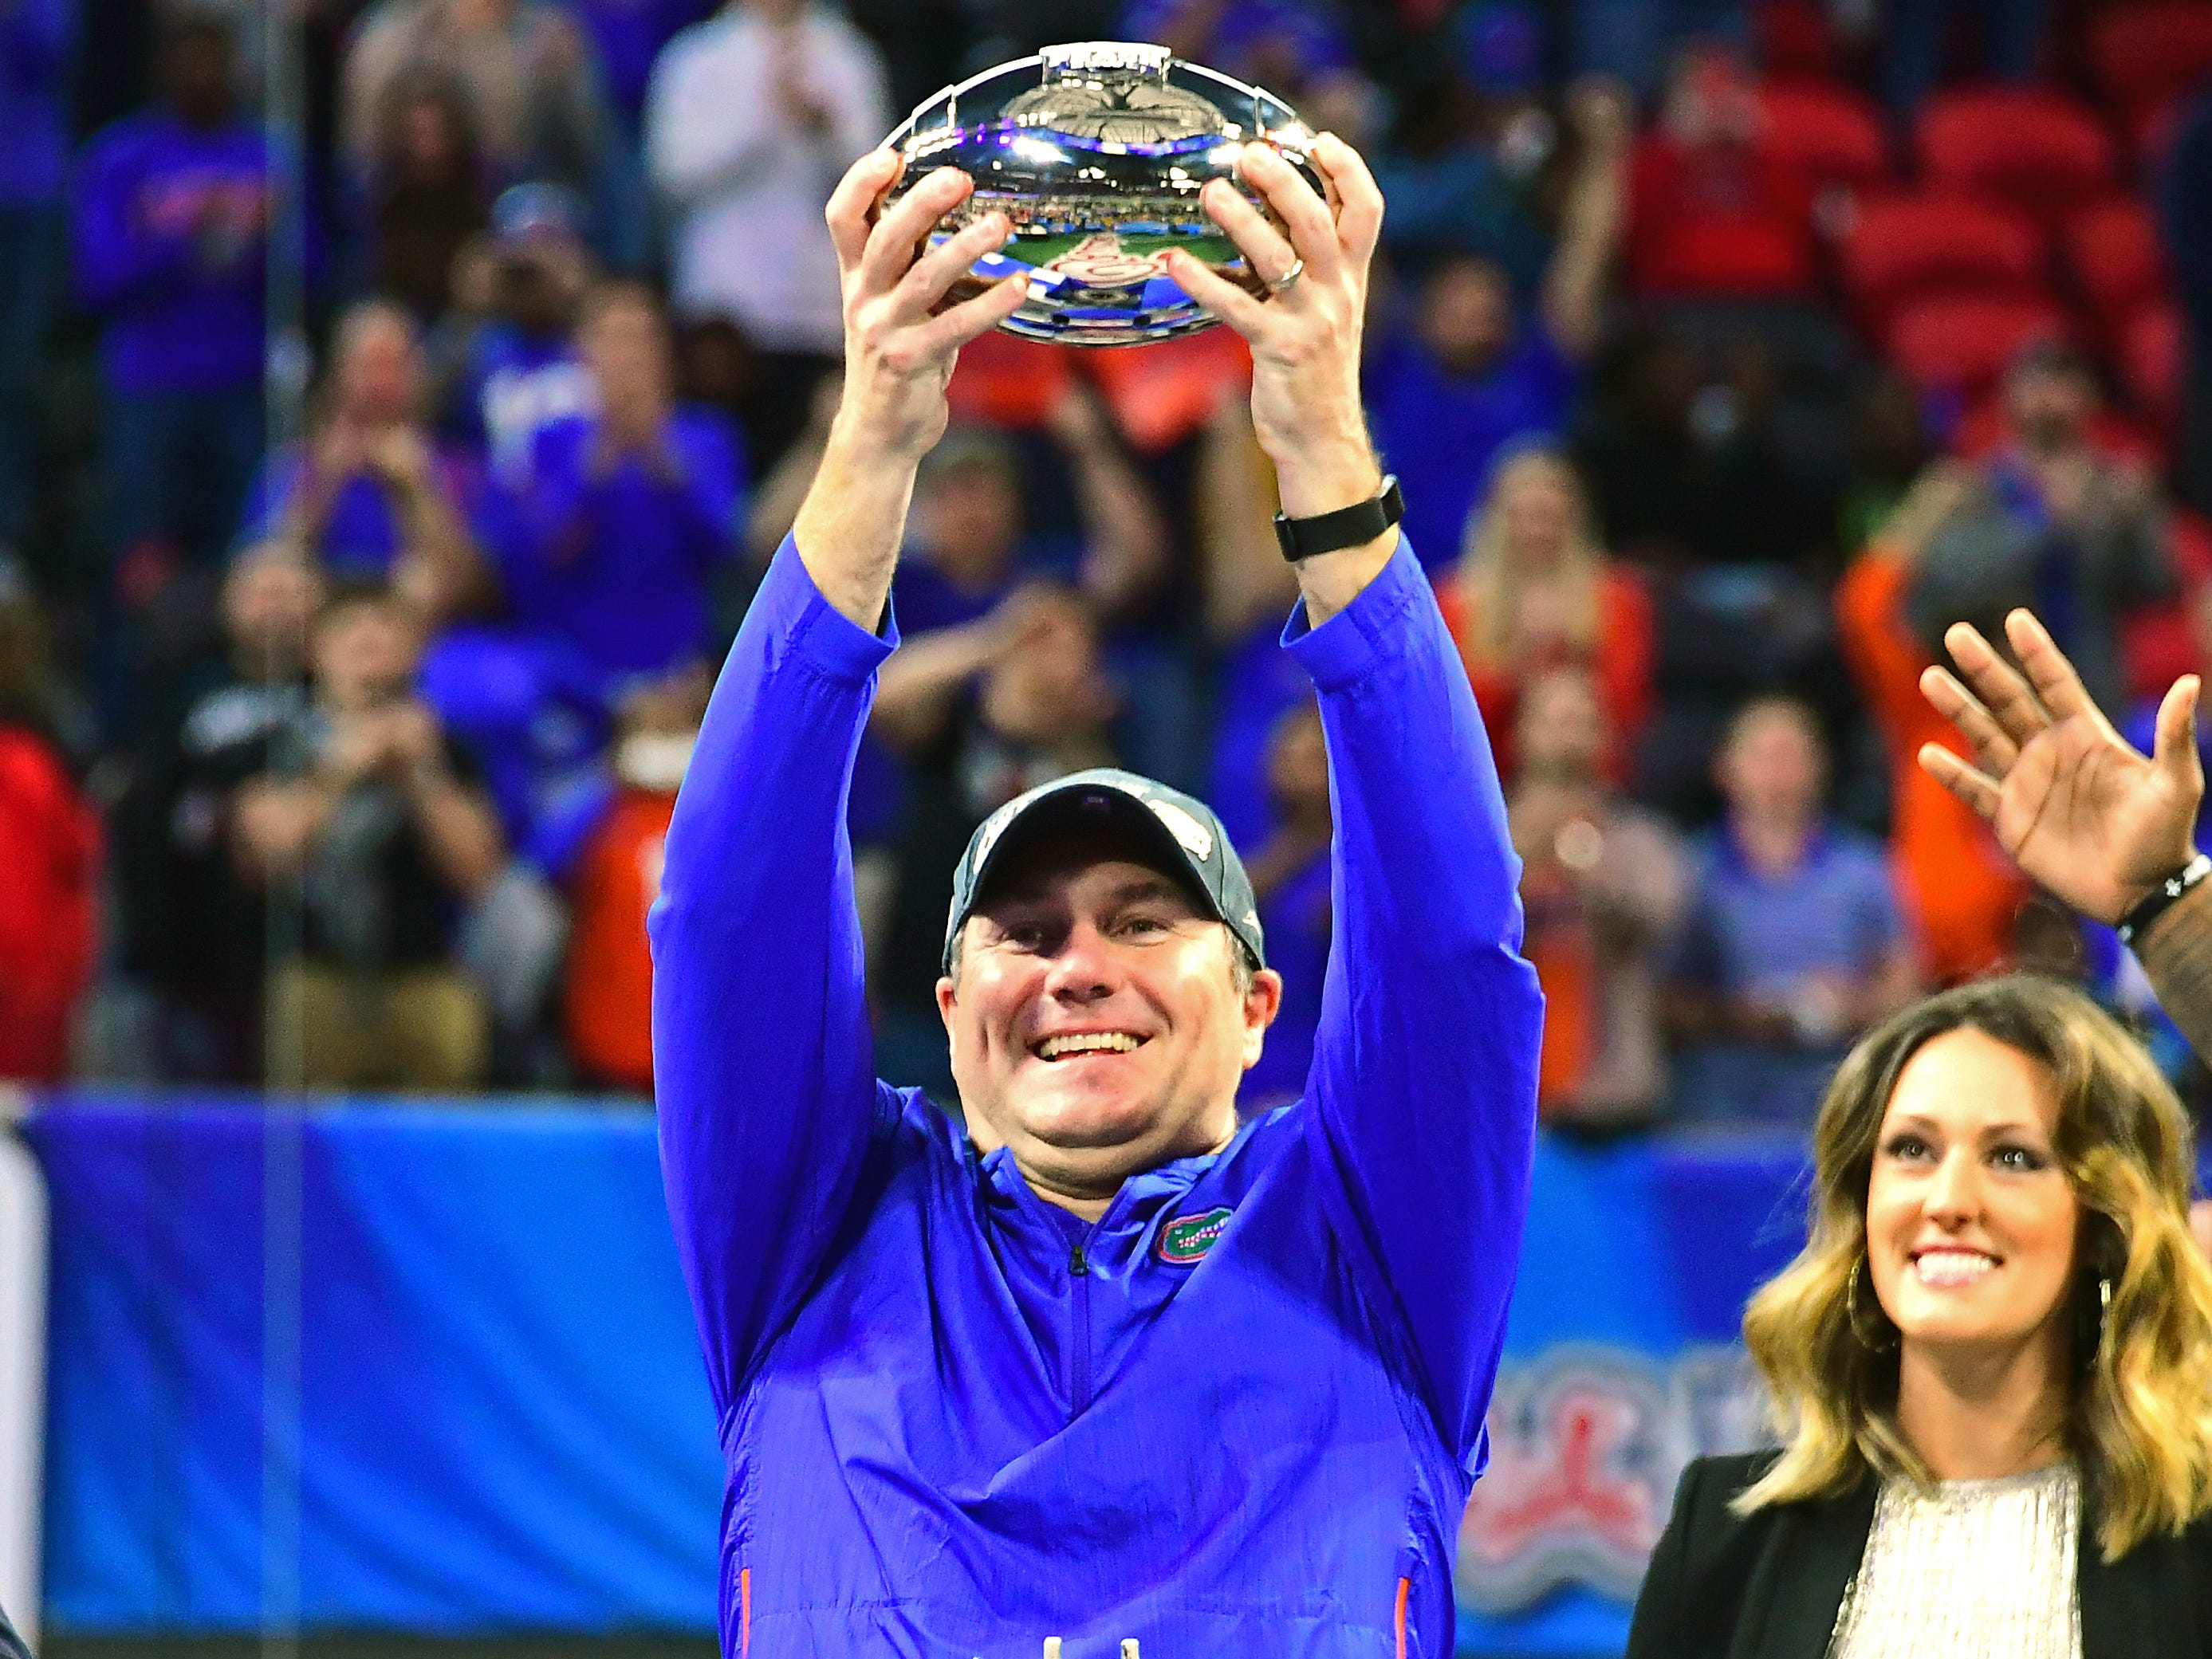 Florida coach Dan Mullen hold the trophy after U-M's 41-15 loss in the Peach Bowl on Saturday, Dec. 29, 2018, in Atlanta.